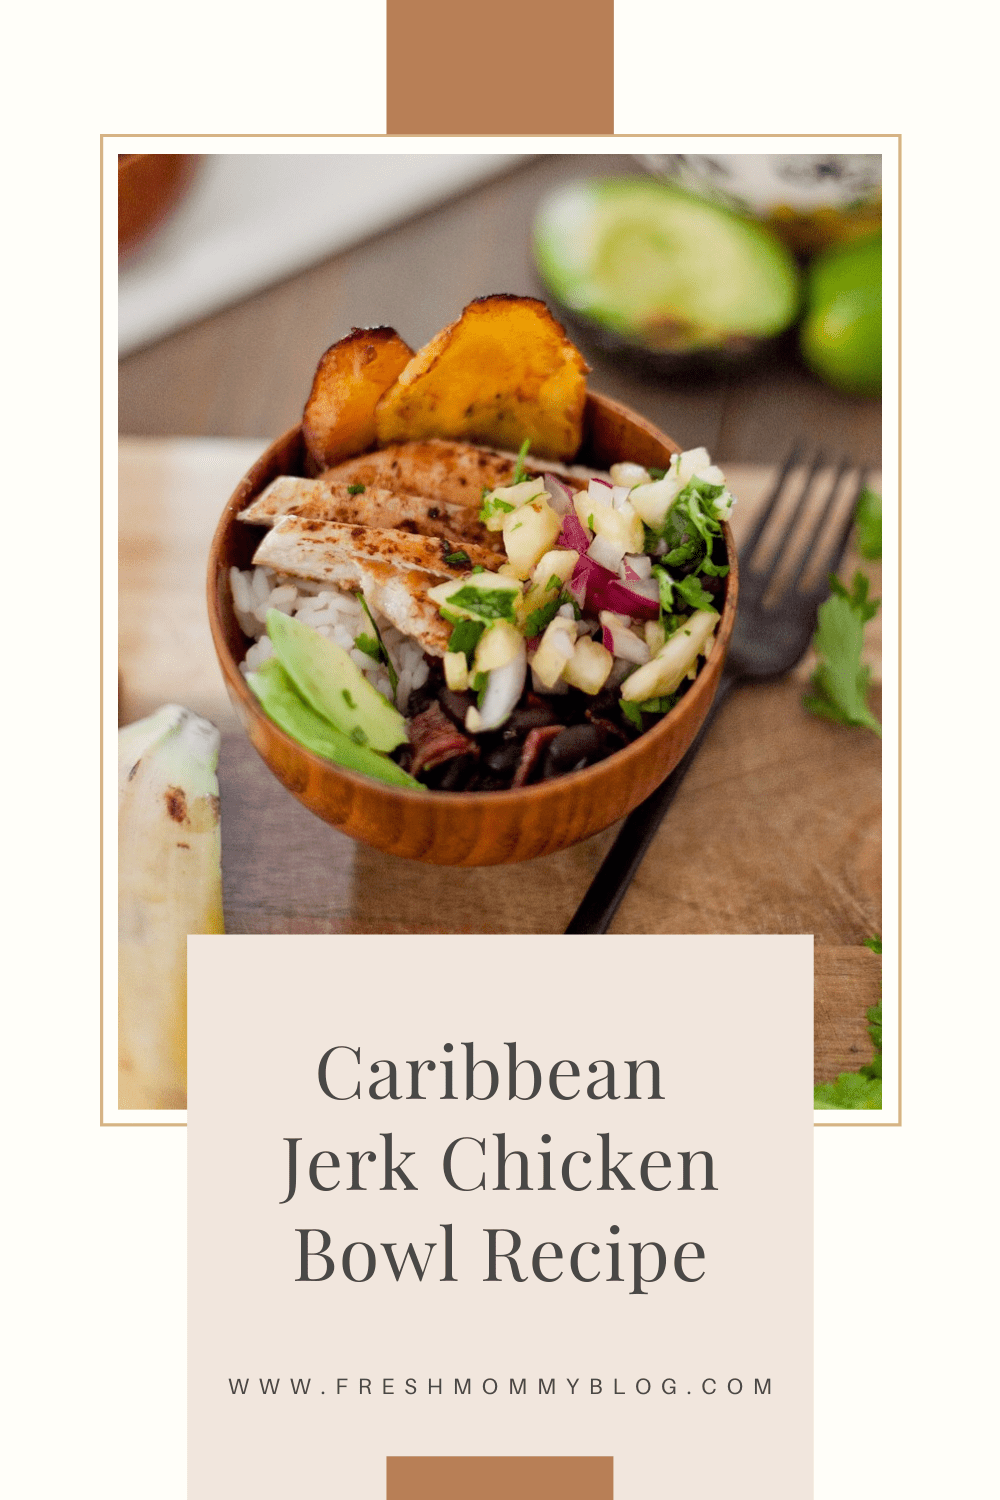 Caribbean Jerk Chicken Bowl with Pineapple Salsa and Fried Plantains for a flavorful dinner recipe idea featured by popular Florida foodie blogger, Tabitha Blue of Fresh Mommy Blog | Caribbean Jerk Chicken by popular Florida lifestyle blog, Fresh Mommy Blog: Pinterest image of a Caribbean jerk chicken bowl  in a wooden bowl next to a black metal fork.